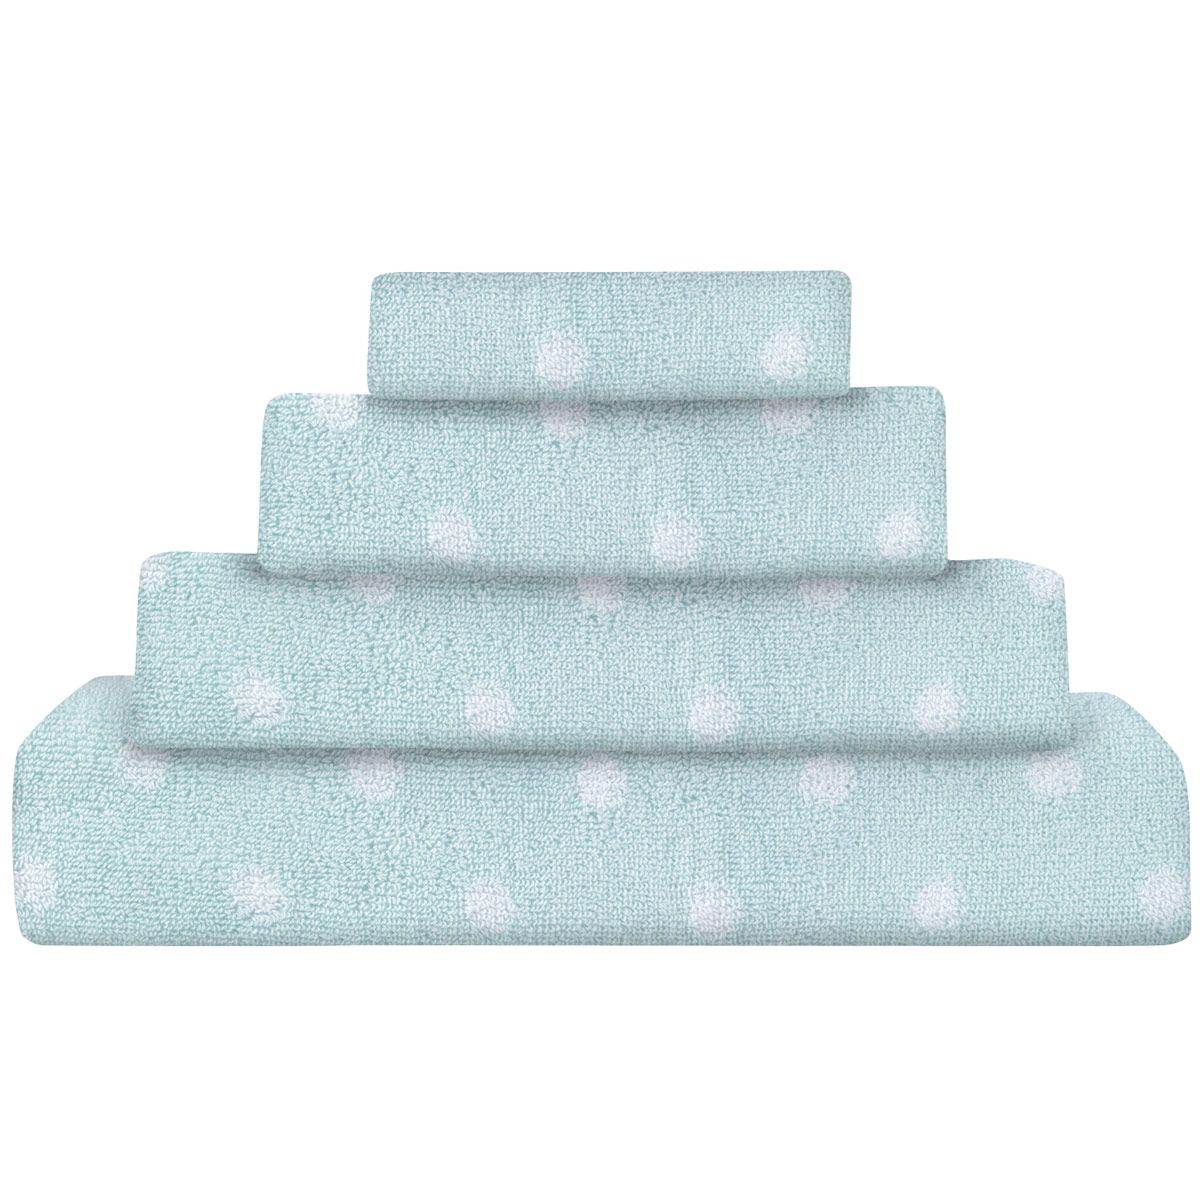 Spot Bath Towel Spots Dots Cathkidston Decoracion De Unas